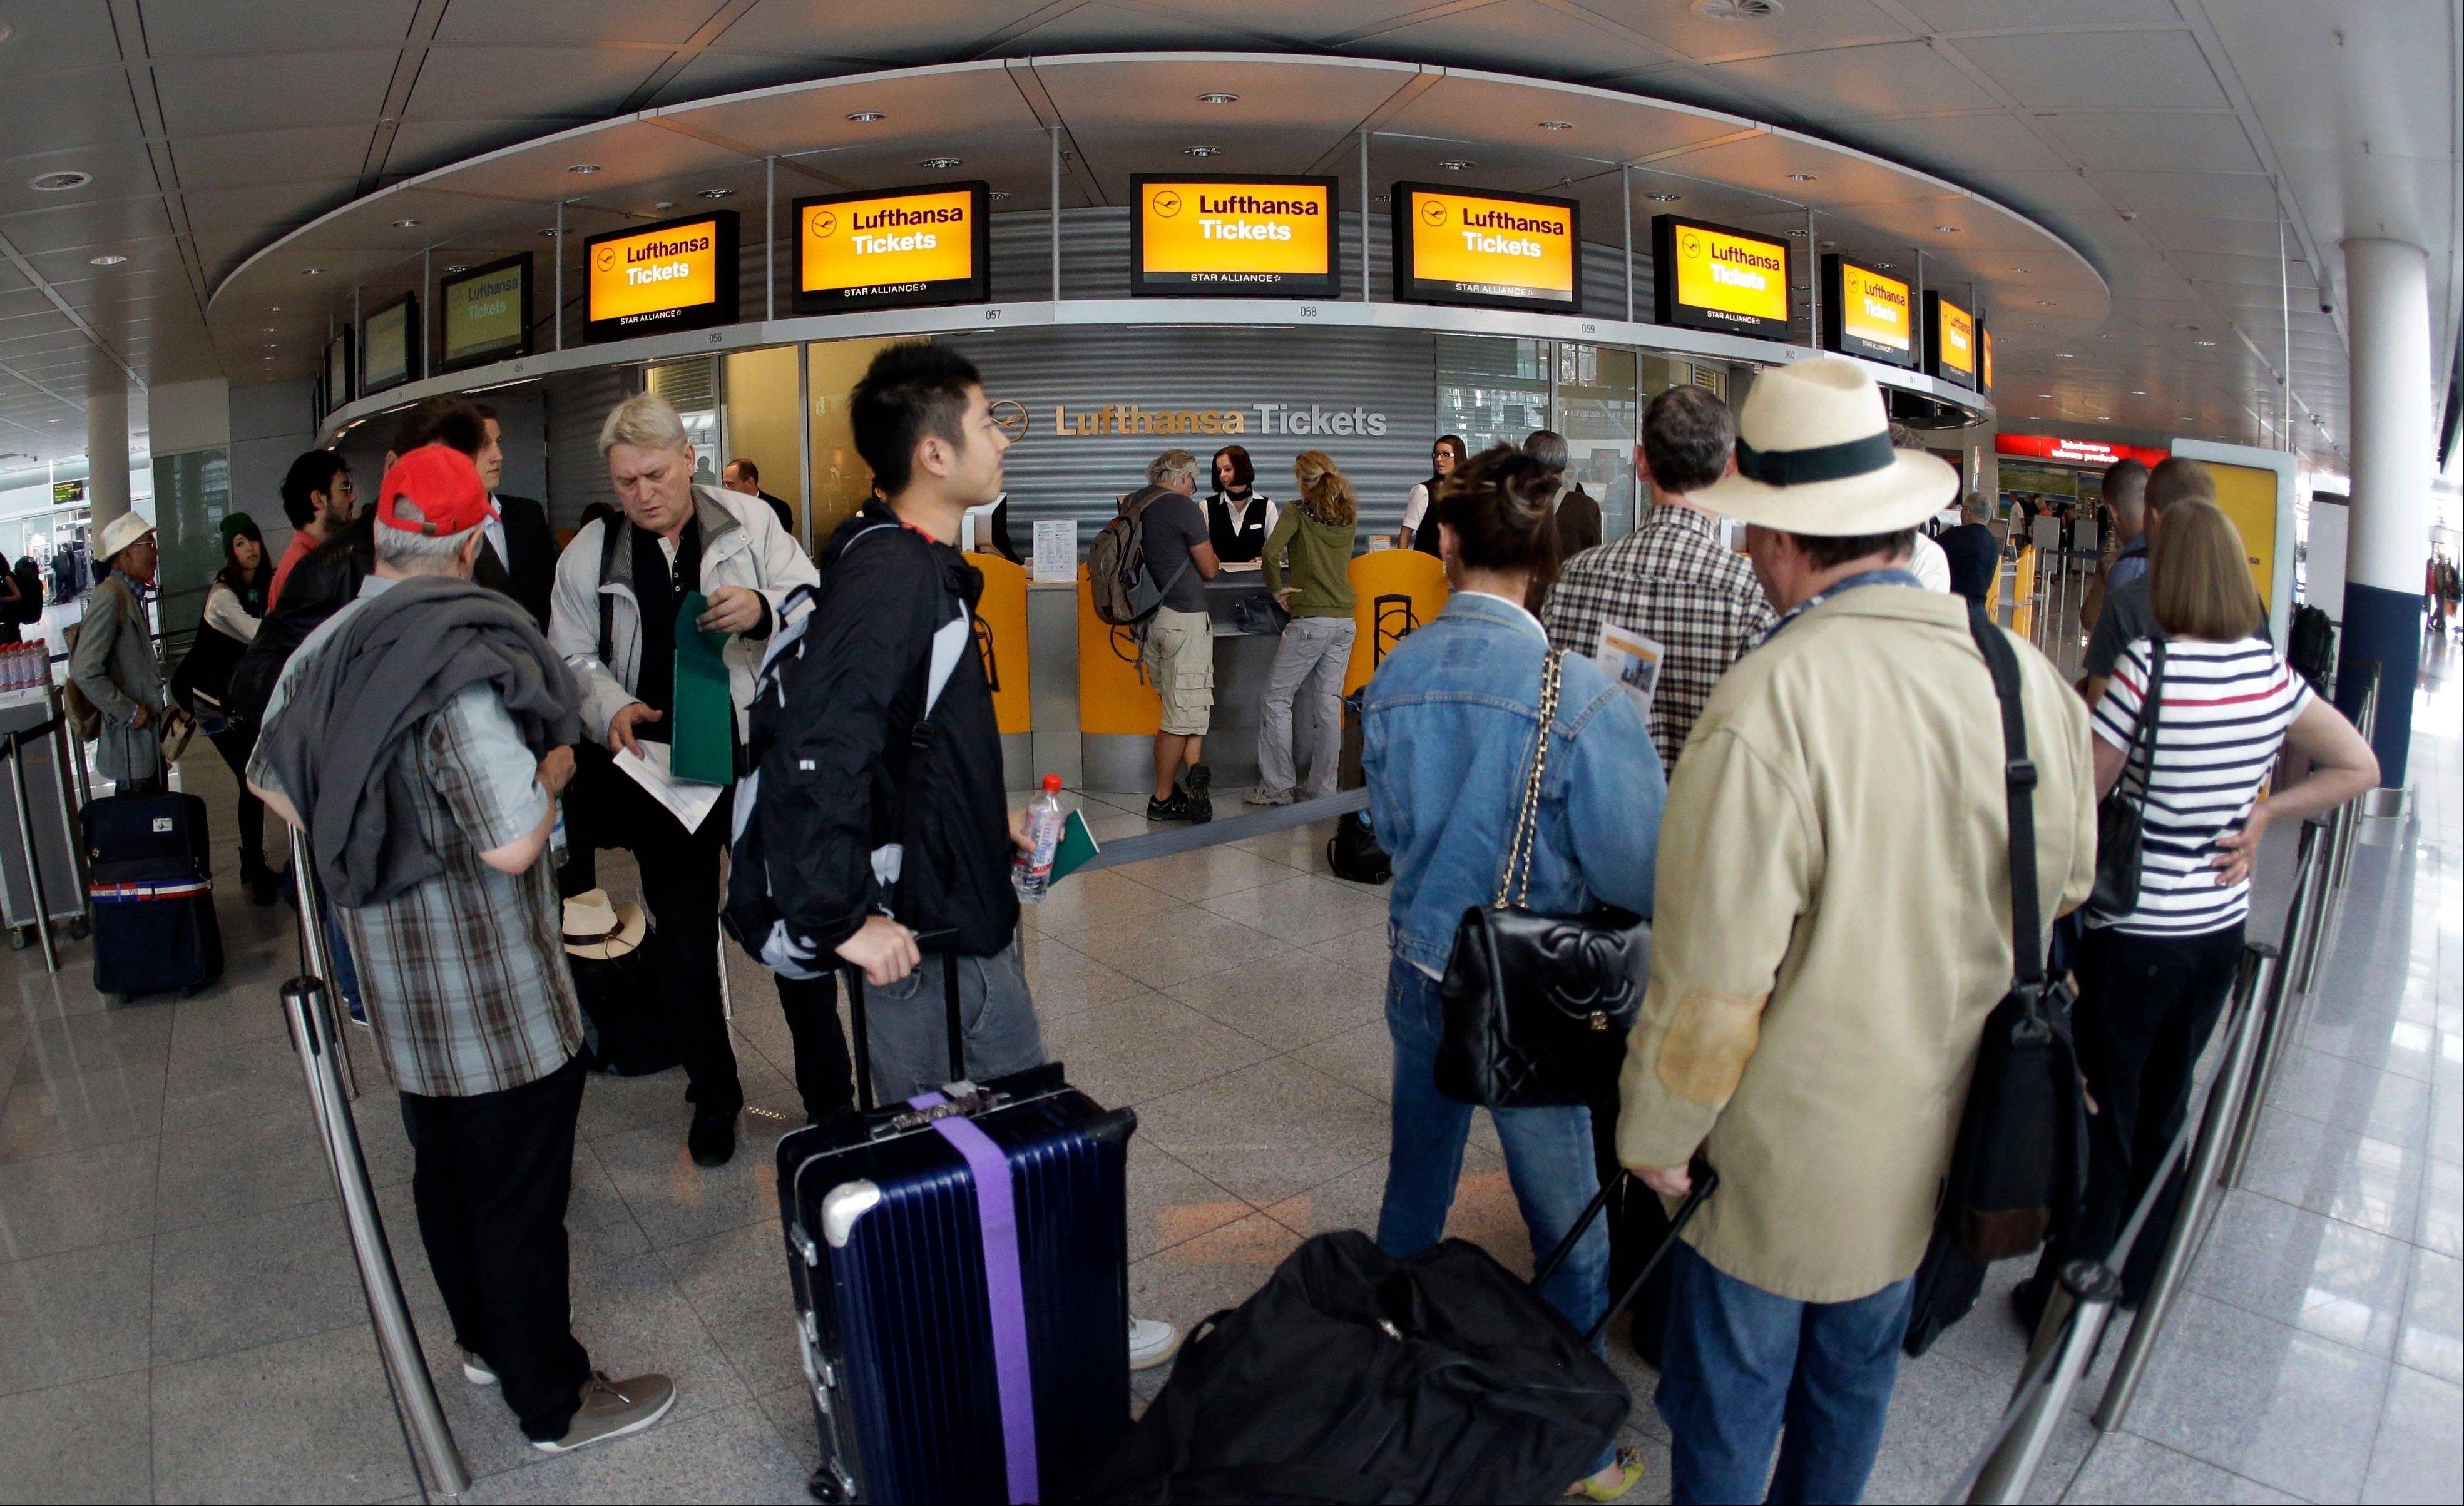 Passengers wait in front of Lufthansa counters as flight attendants of German Lufthansa airline went on an 24-hour-strike for higher wages at the airport in Munich, southern Germany, on Friday, Sept. 7, 2012.